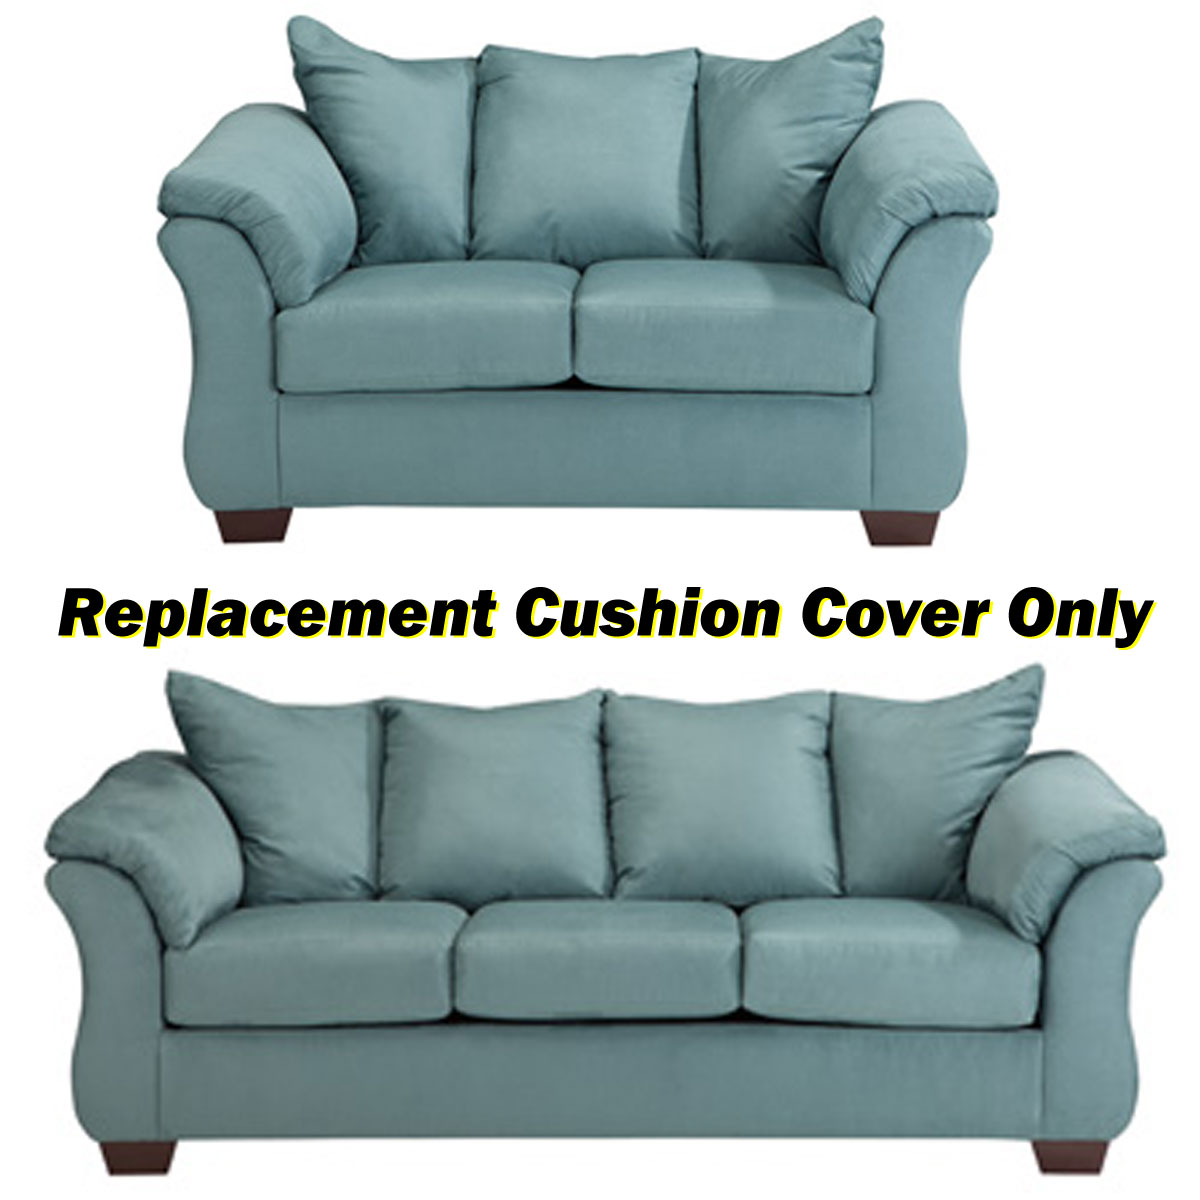 how to replace sofa cushion covers white leather wall color ashley darcy replacement cover only 7500638 or